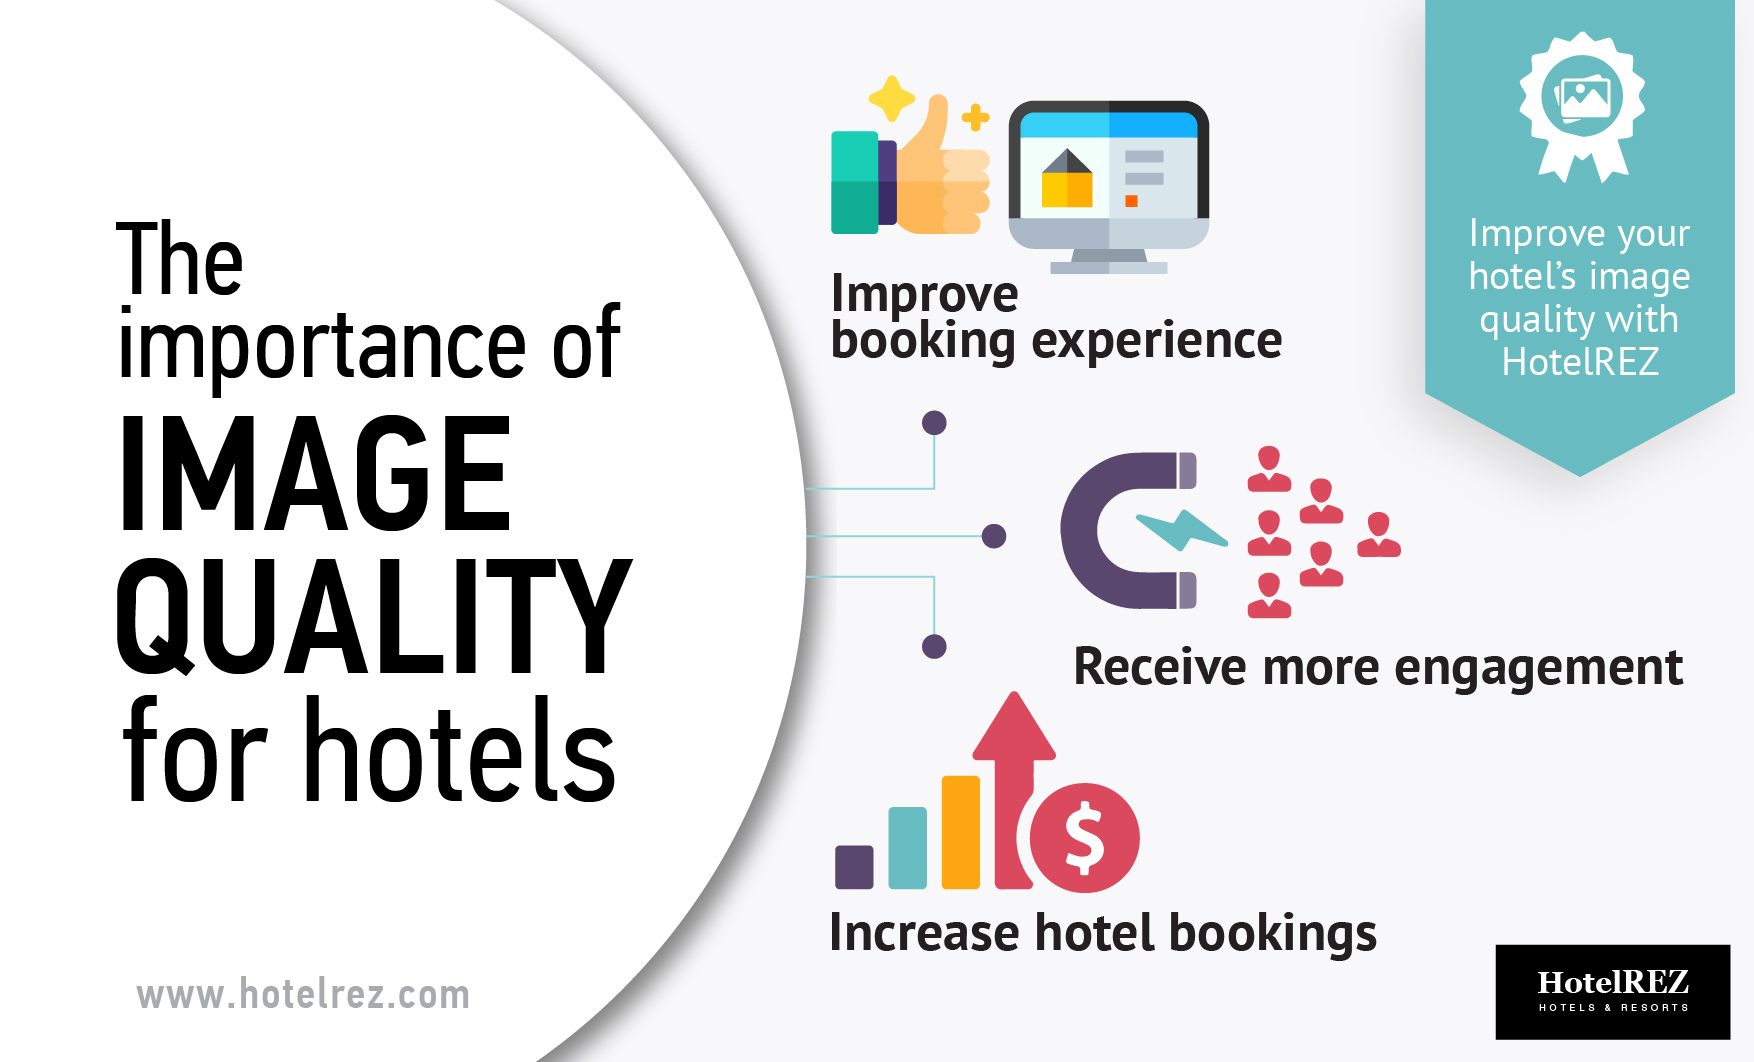 the importance of image quality for hotels - hotel rez